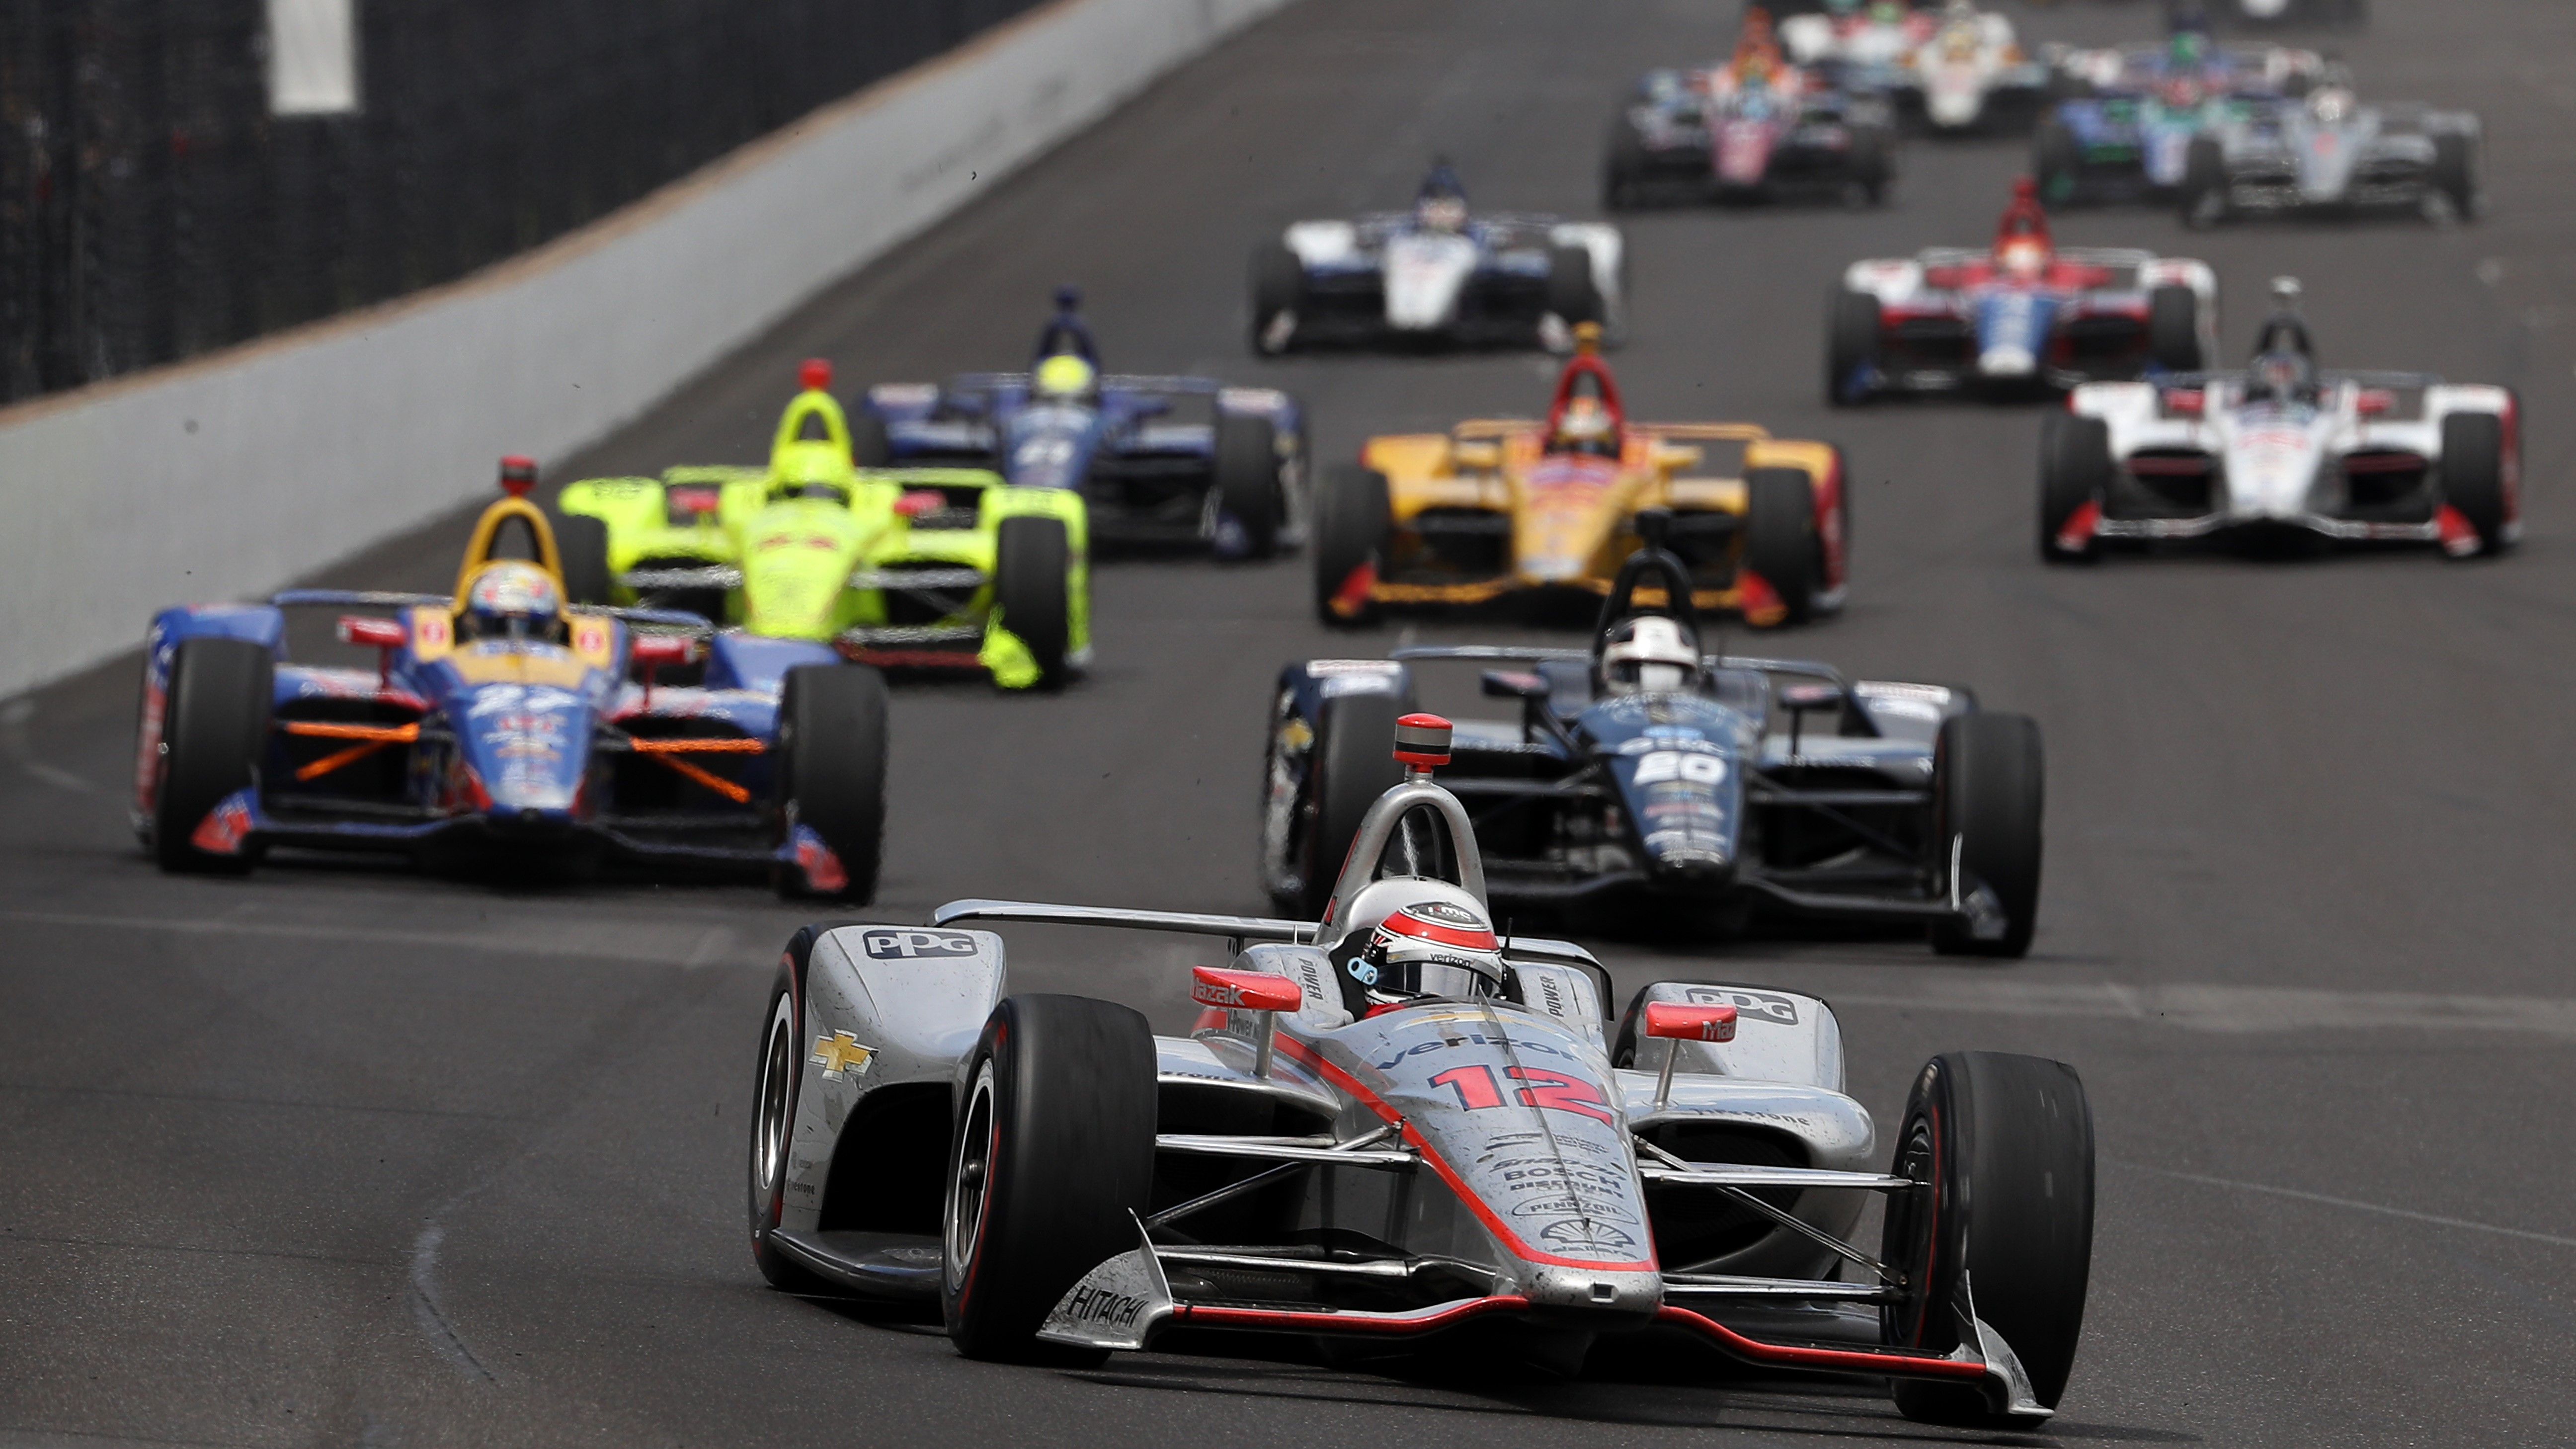 How To Watch Indy 500 Live Stream The Indycar Race Online From Anywhere Now Techradar